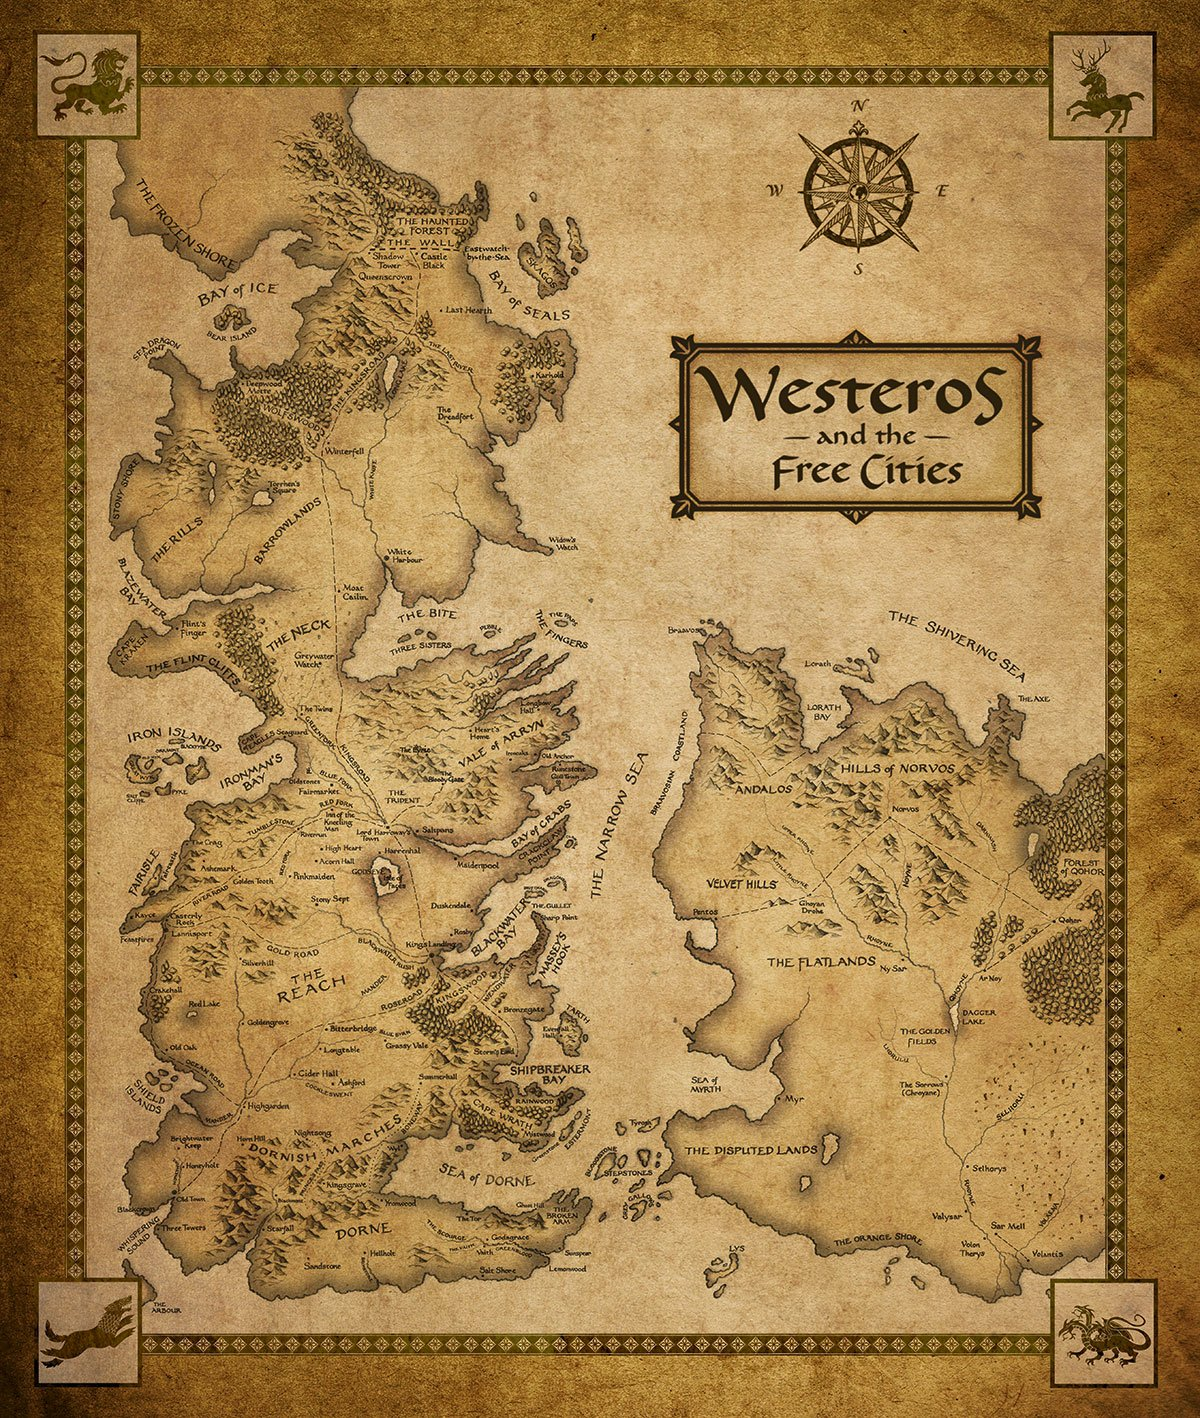 http://lfg.hu/wp-content/uploads/2013/04/Westeros-and-Essos-new-map3.jpg